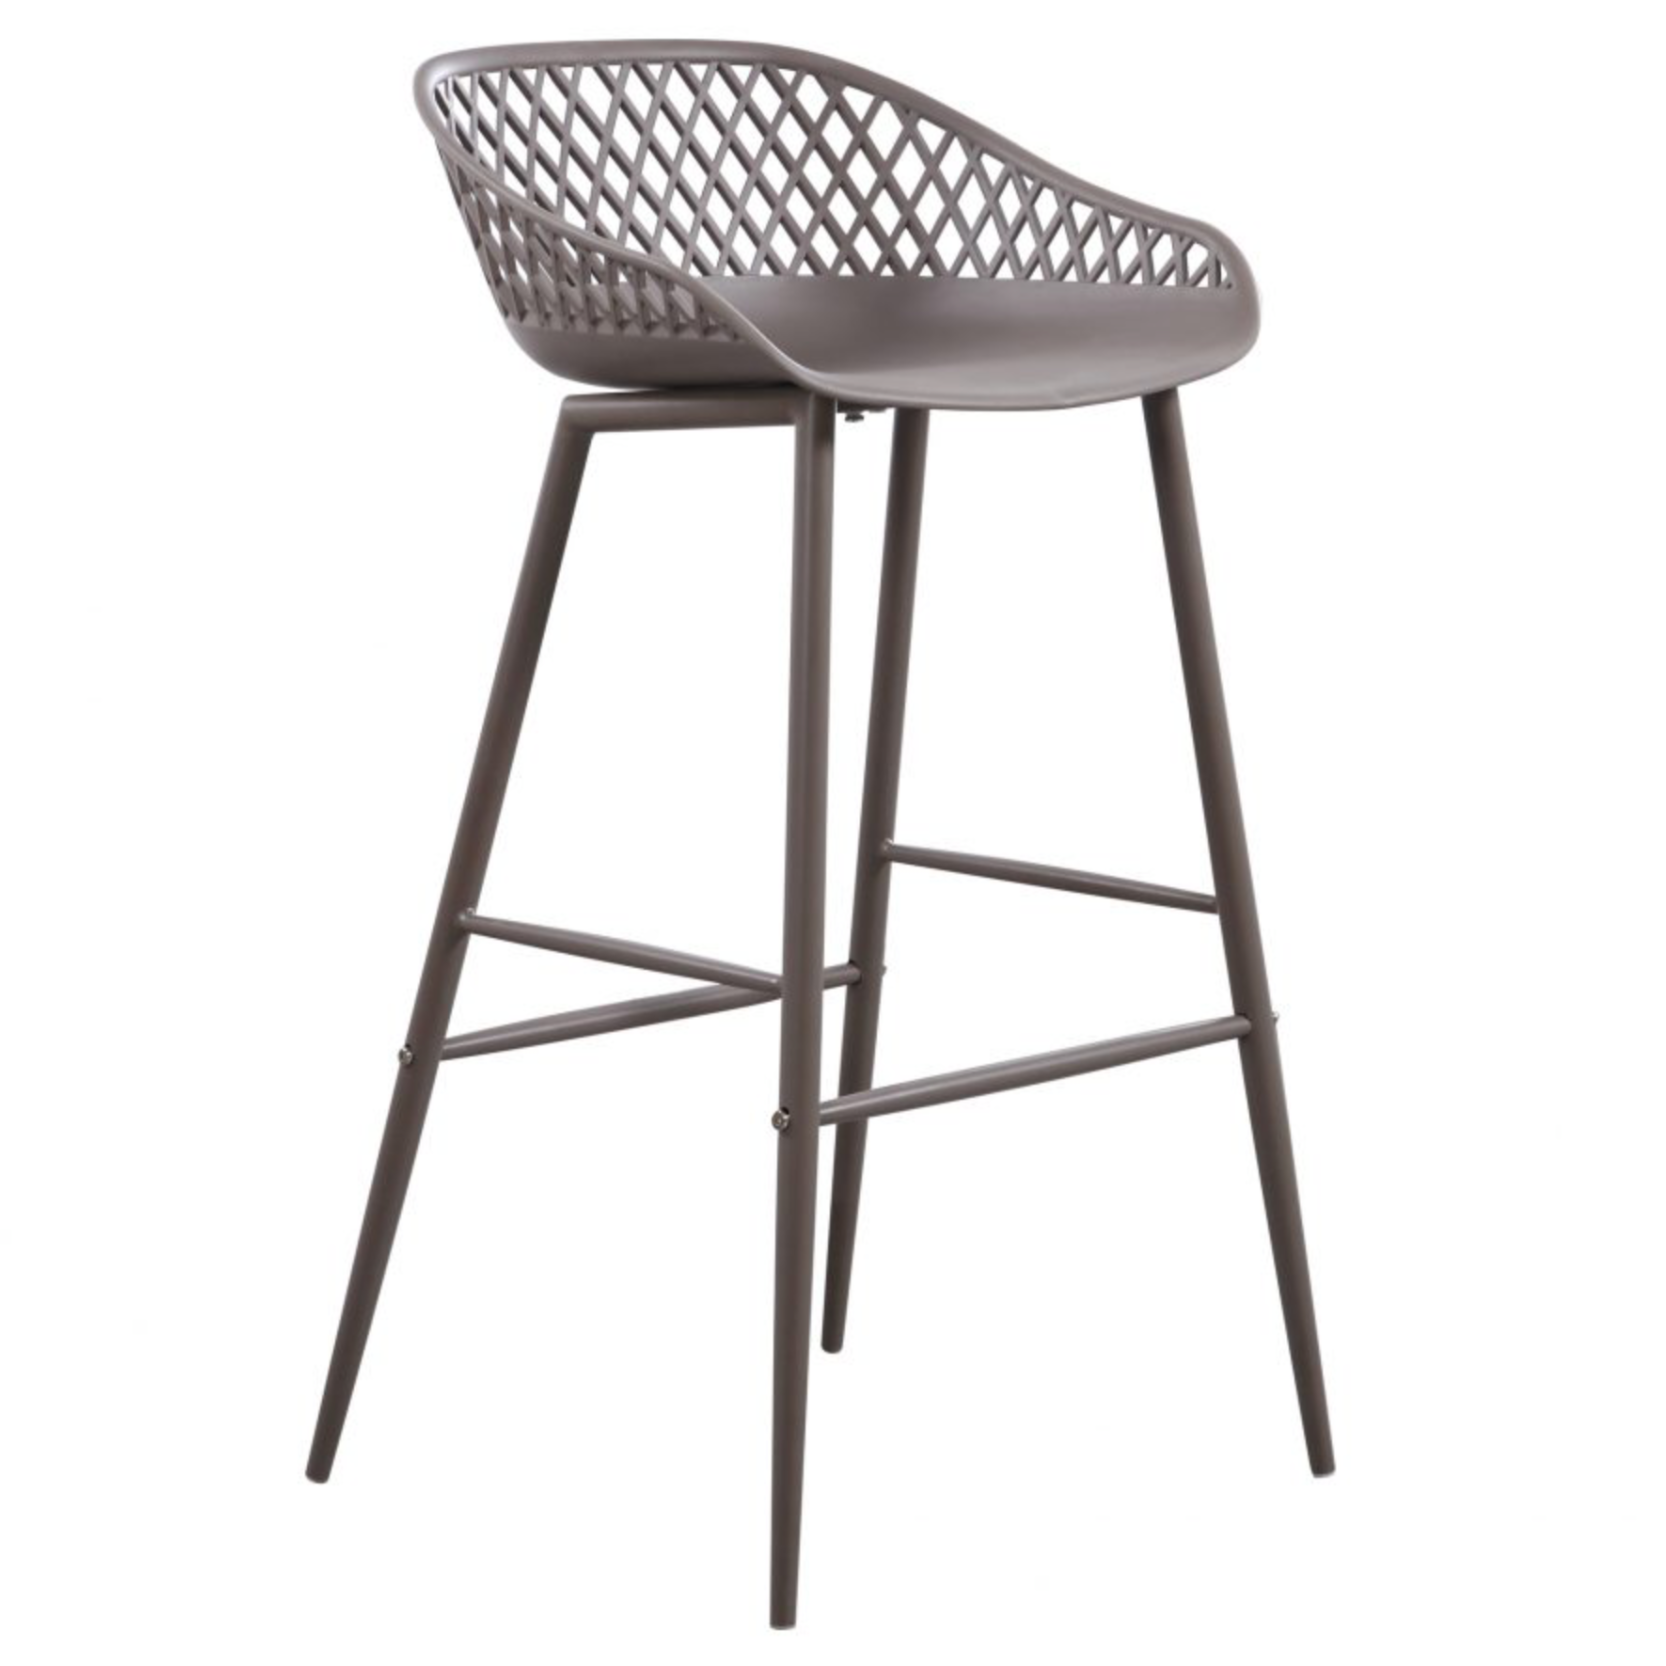 Piazza Indoor/Outdoor Barstool Grey - M2